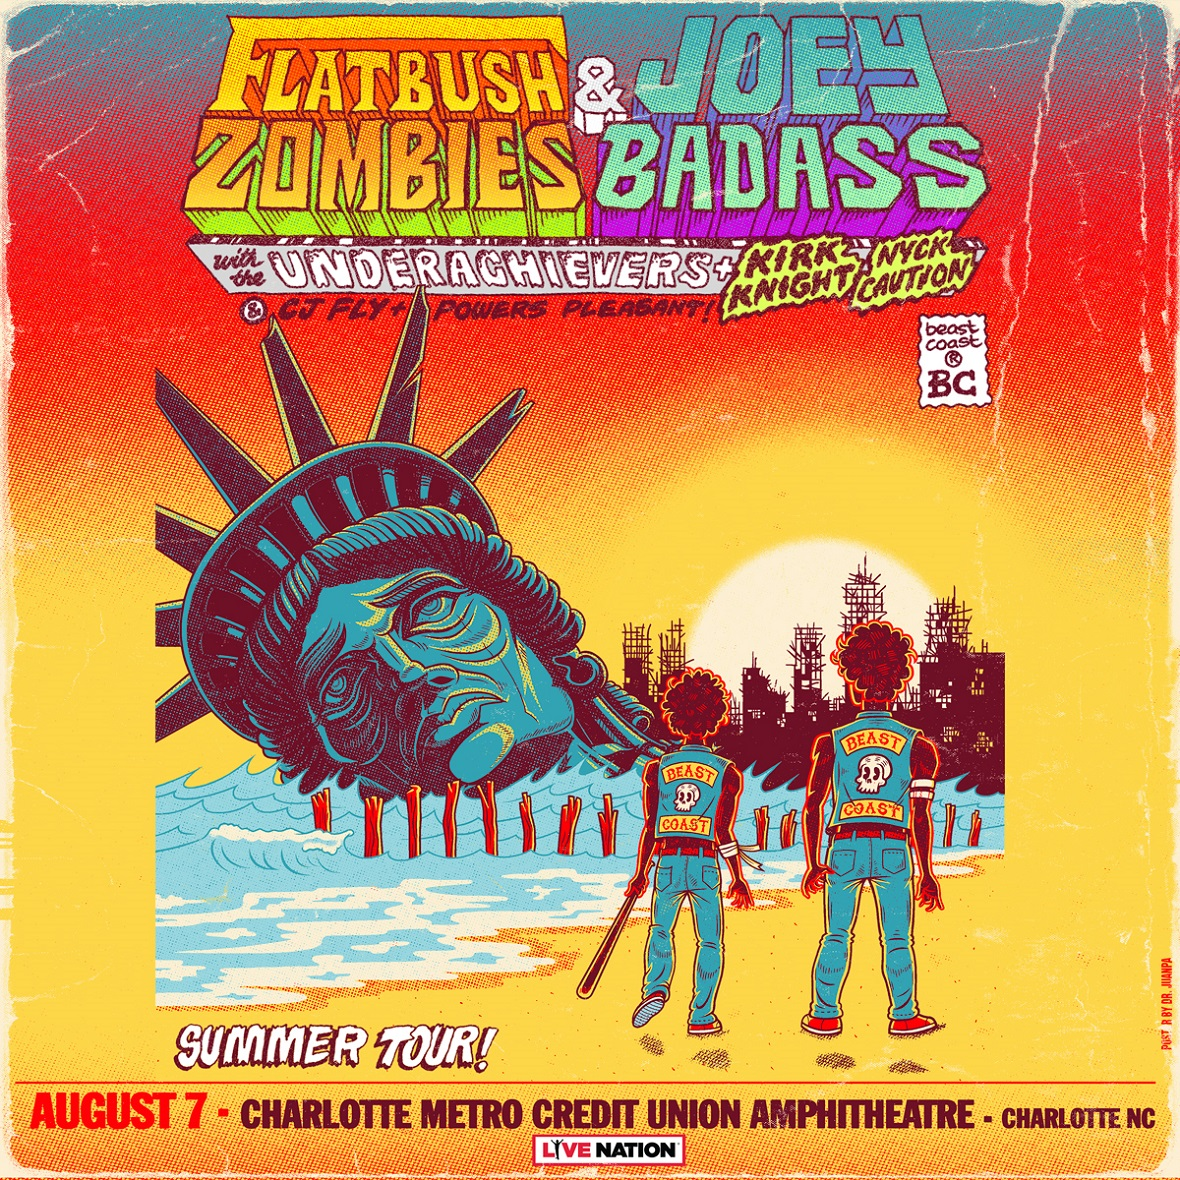 Beast Coast: Escape from New York Tour with Joey Bada$$ & Flatbush Zombies with The Underachievers, Kirk Knight, Nyck Caution, Powers Pleasant and CJ Fly @ Charlotte Metro Credit Union Amphitheatre